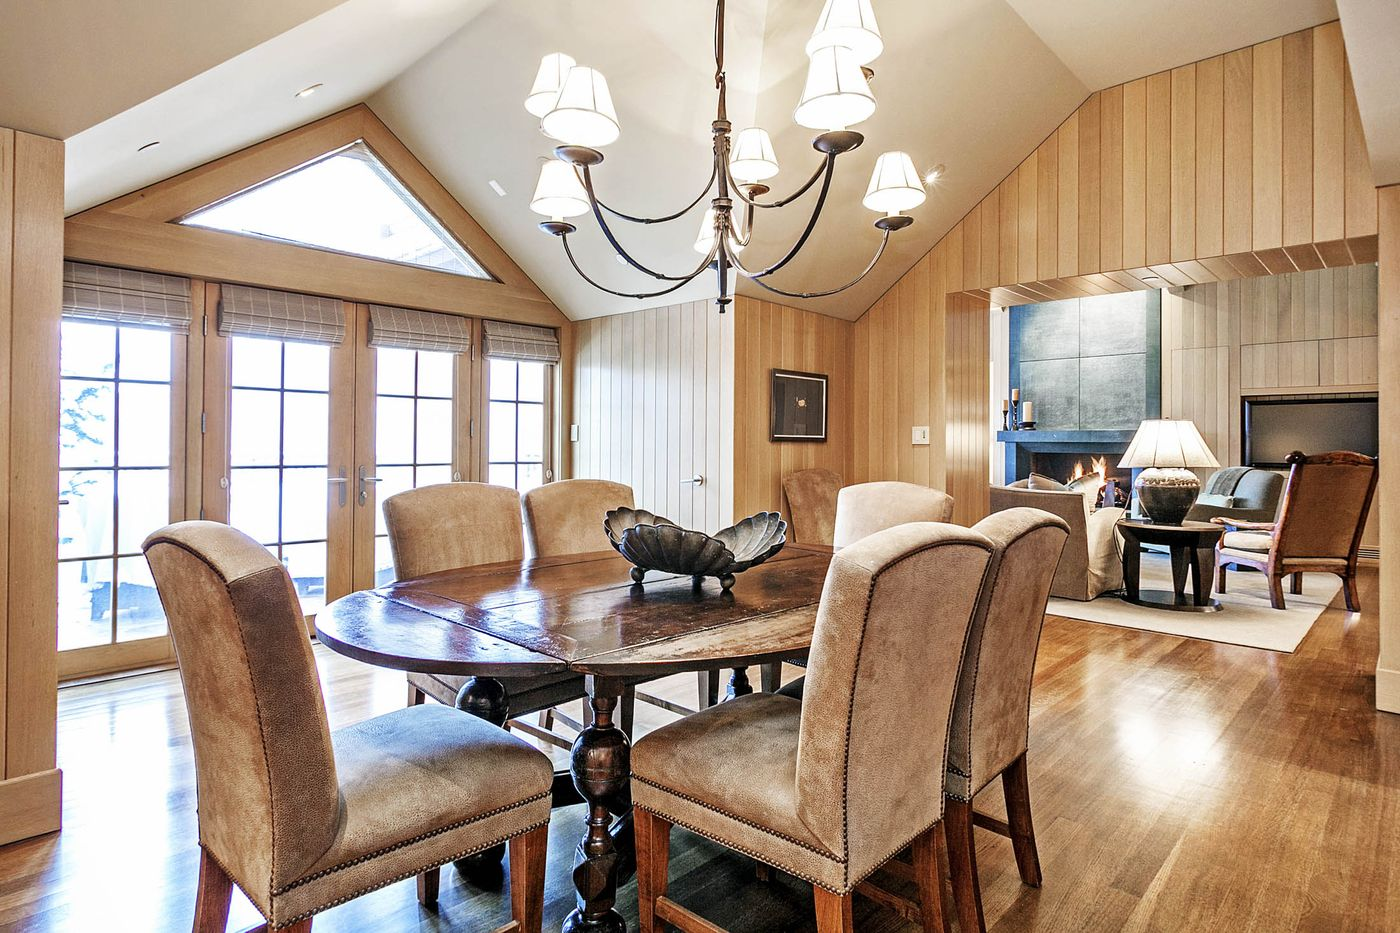 458 Vail Valley Road in Vail Village, Colo.,listed for $9.75 million with Sotheby's International Realty. Source: Sotheby's International Realty